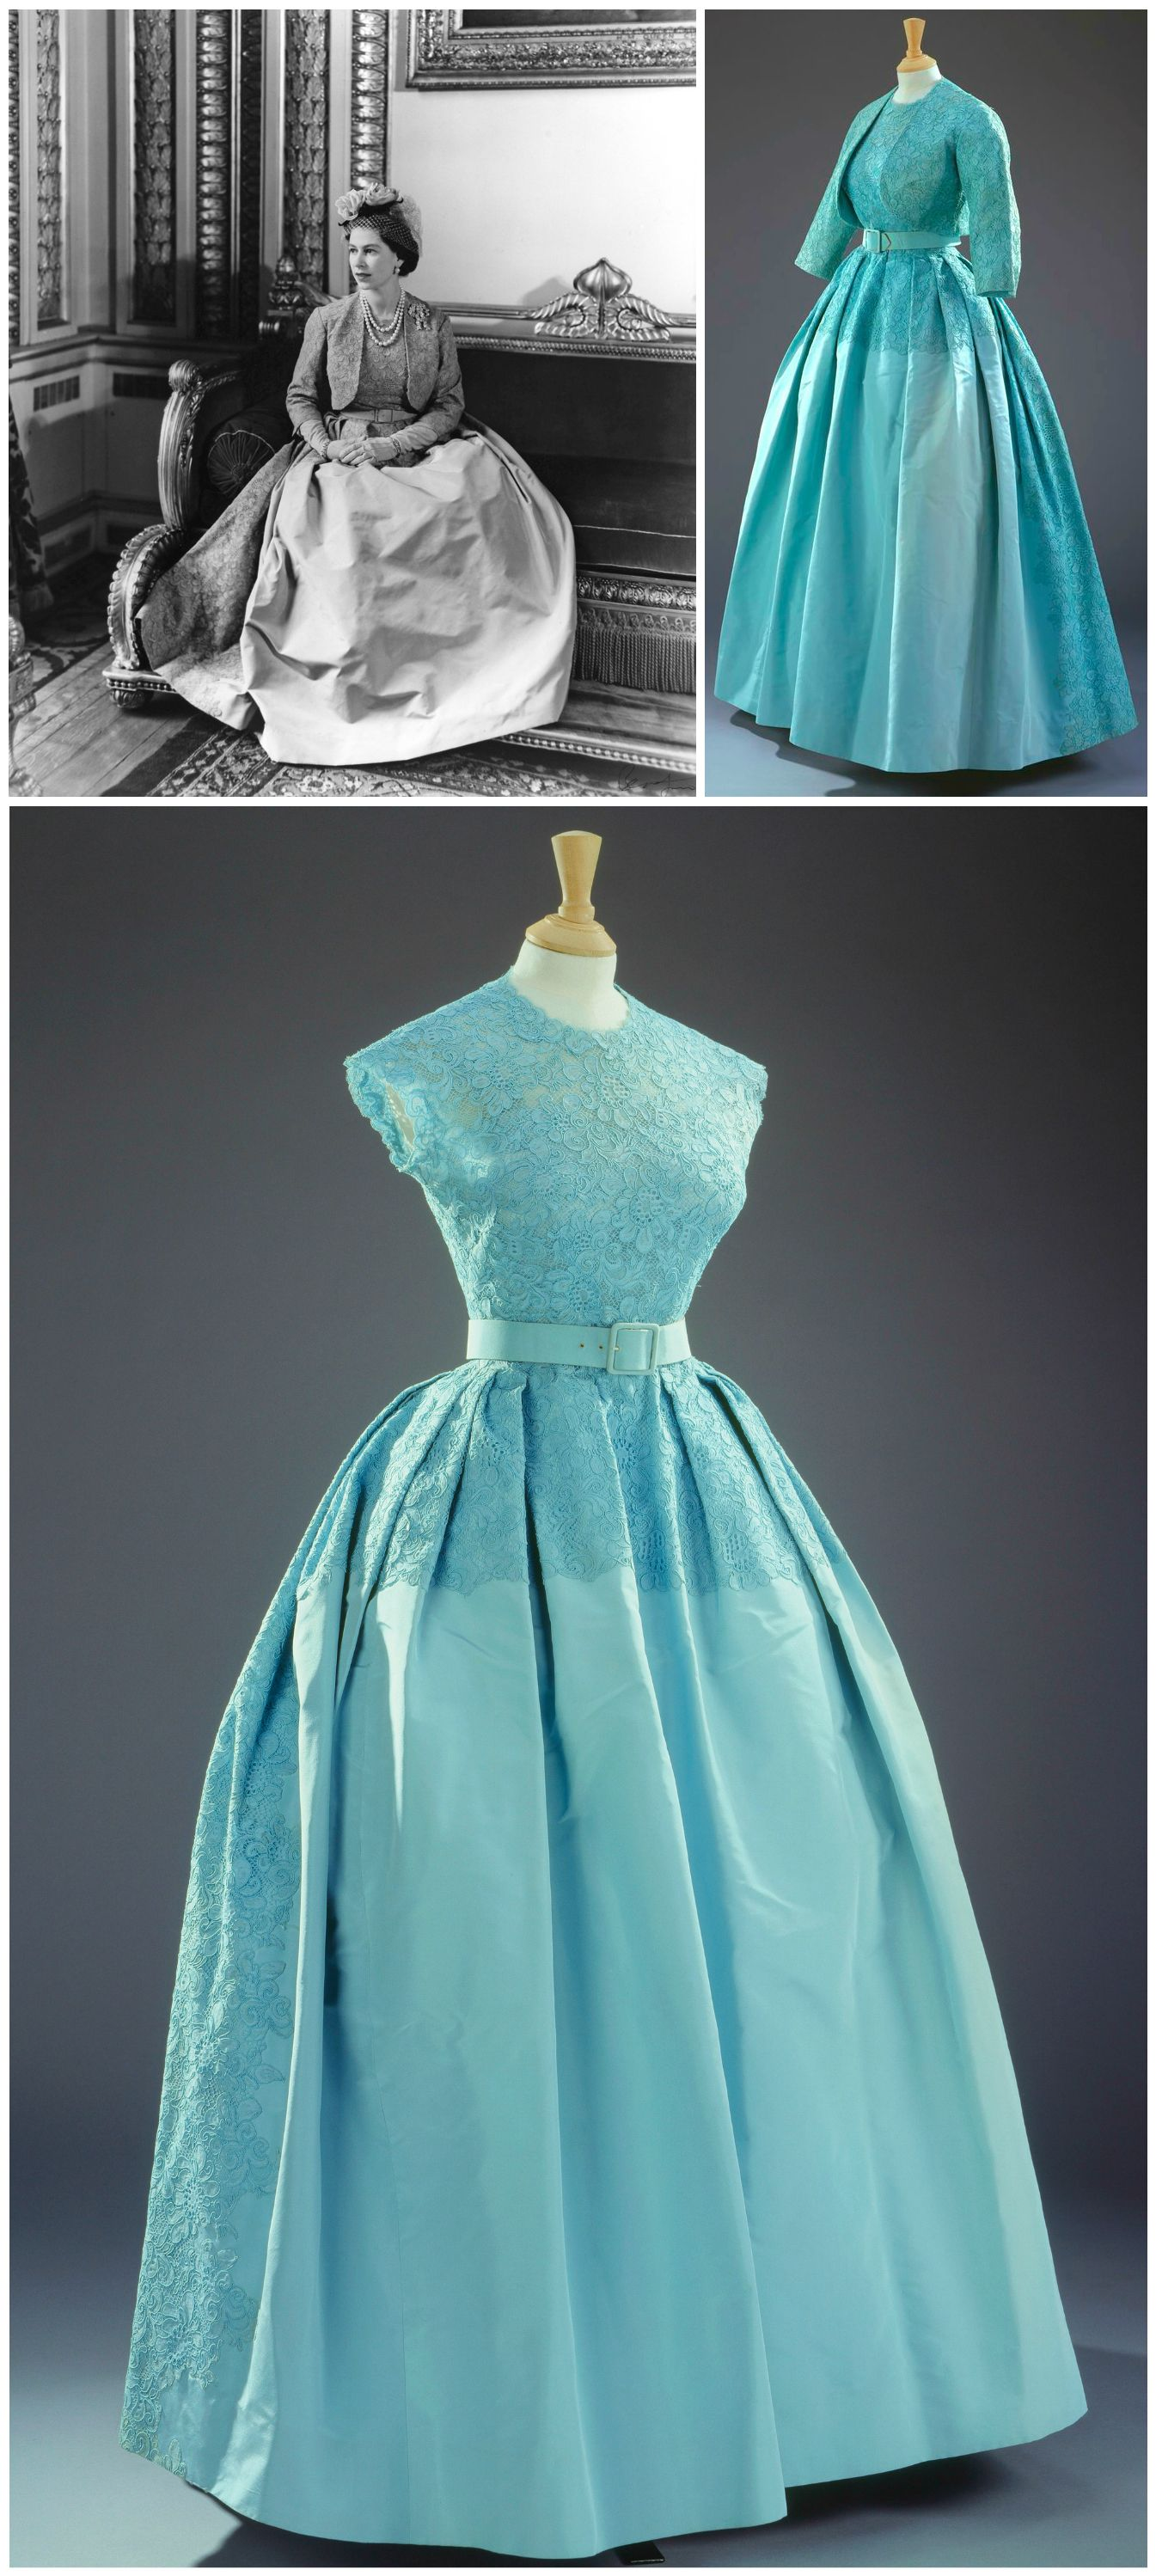 Turquoise gown with matching bolero jacket designed by norman